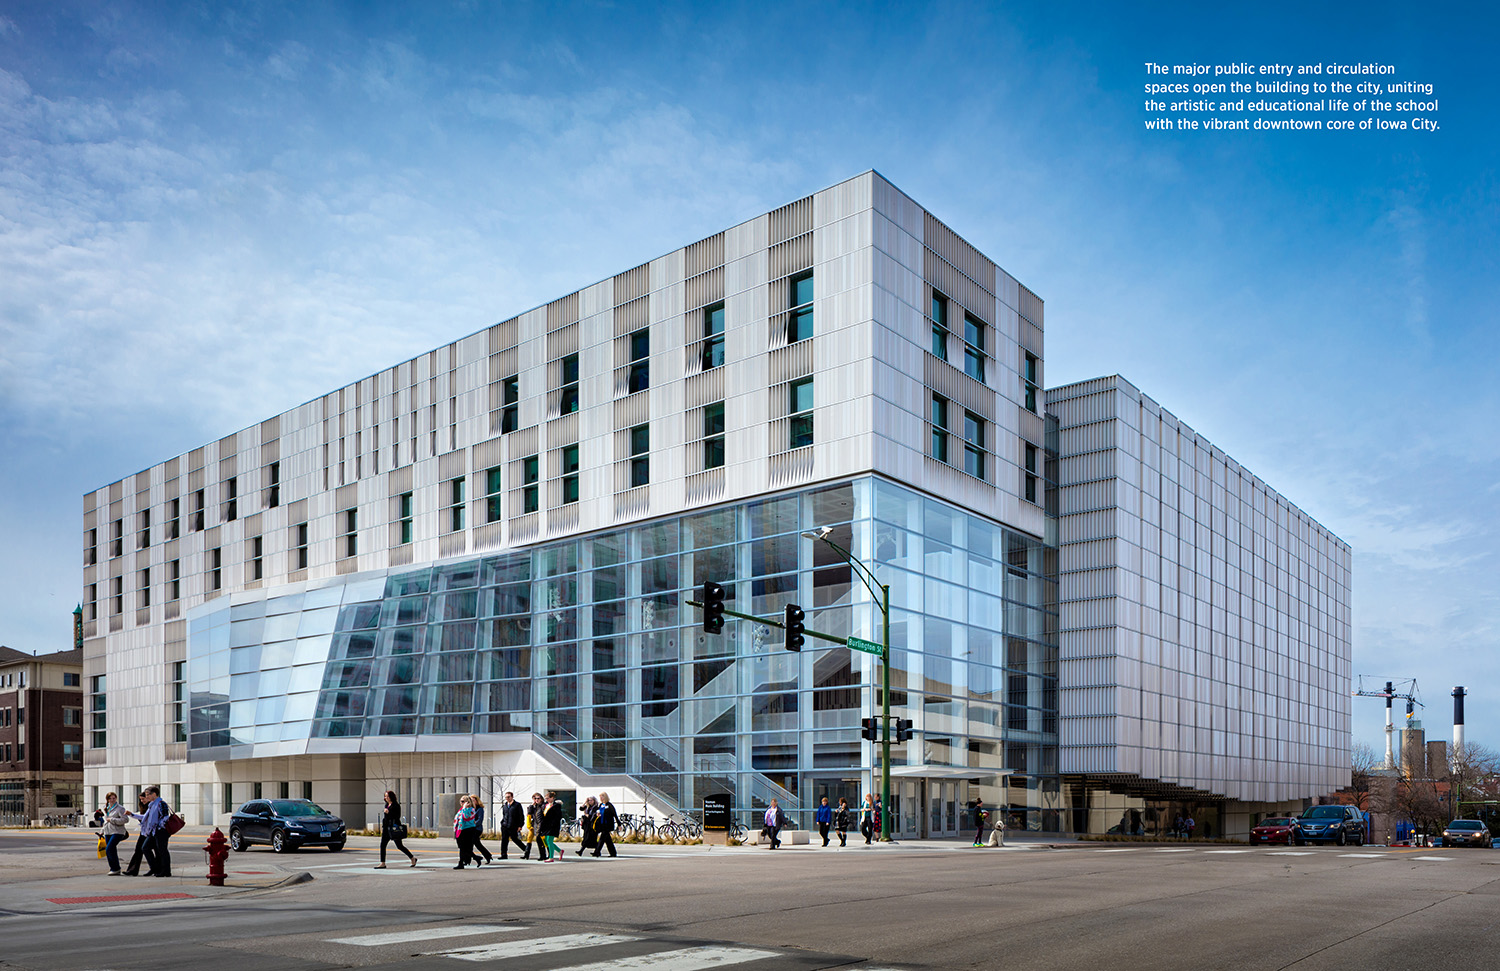 The major public entry and circulation spaces open the building to the city, uniting the artistic and educational life of the school with the vibrant downtown core of Iowa city. Tim Griffith}